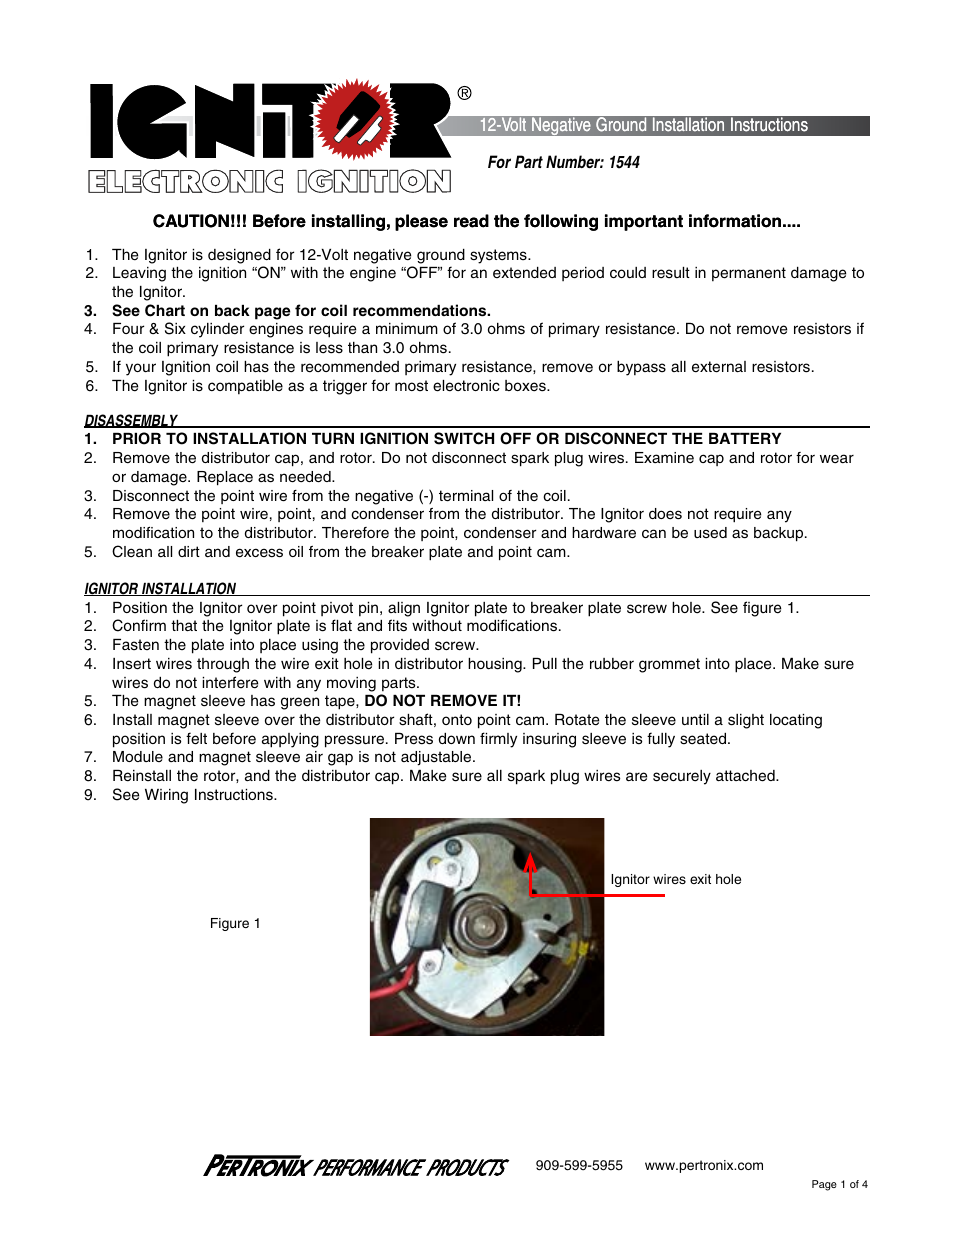 Pertronix Ignitor Wiring Instructions Trusted Diagrams Msd Ignition Ii Diagram For Distributor 1544 User Manual 4 Pages Problems With Iii